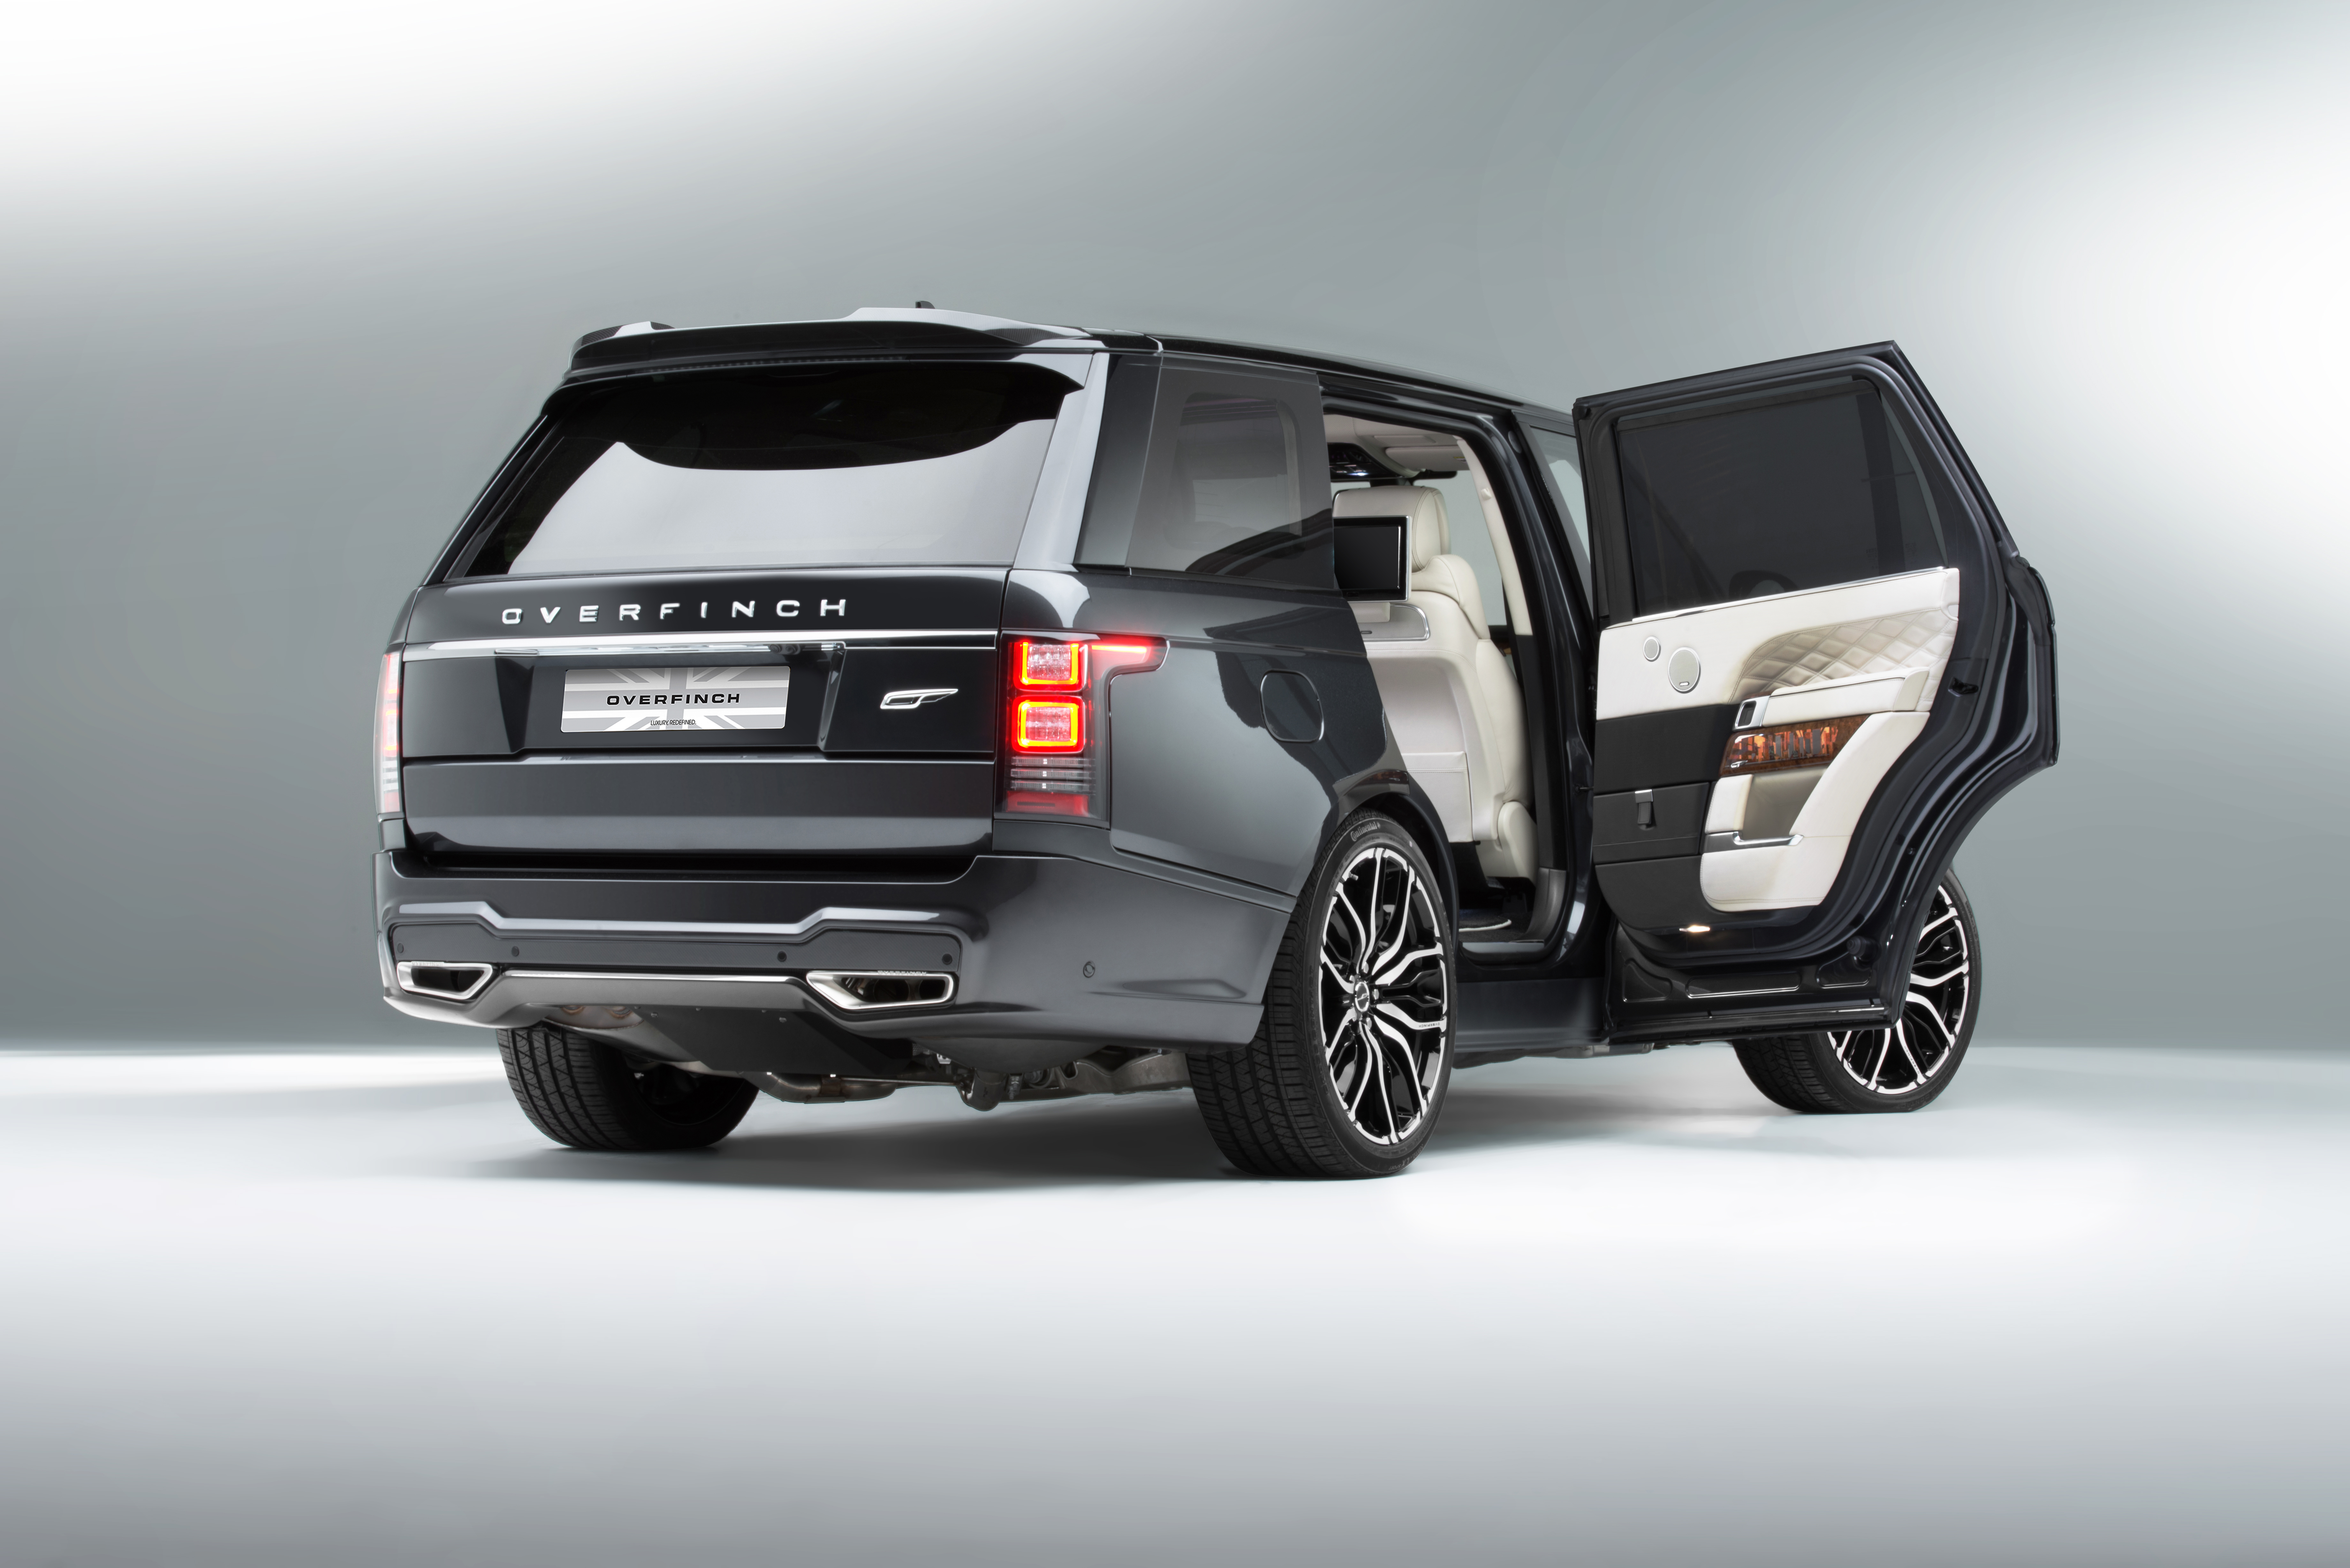 Range Rover modified by Overfinch